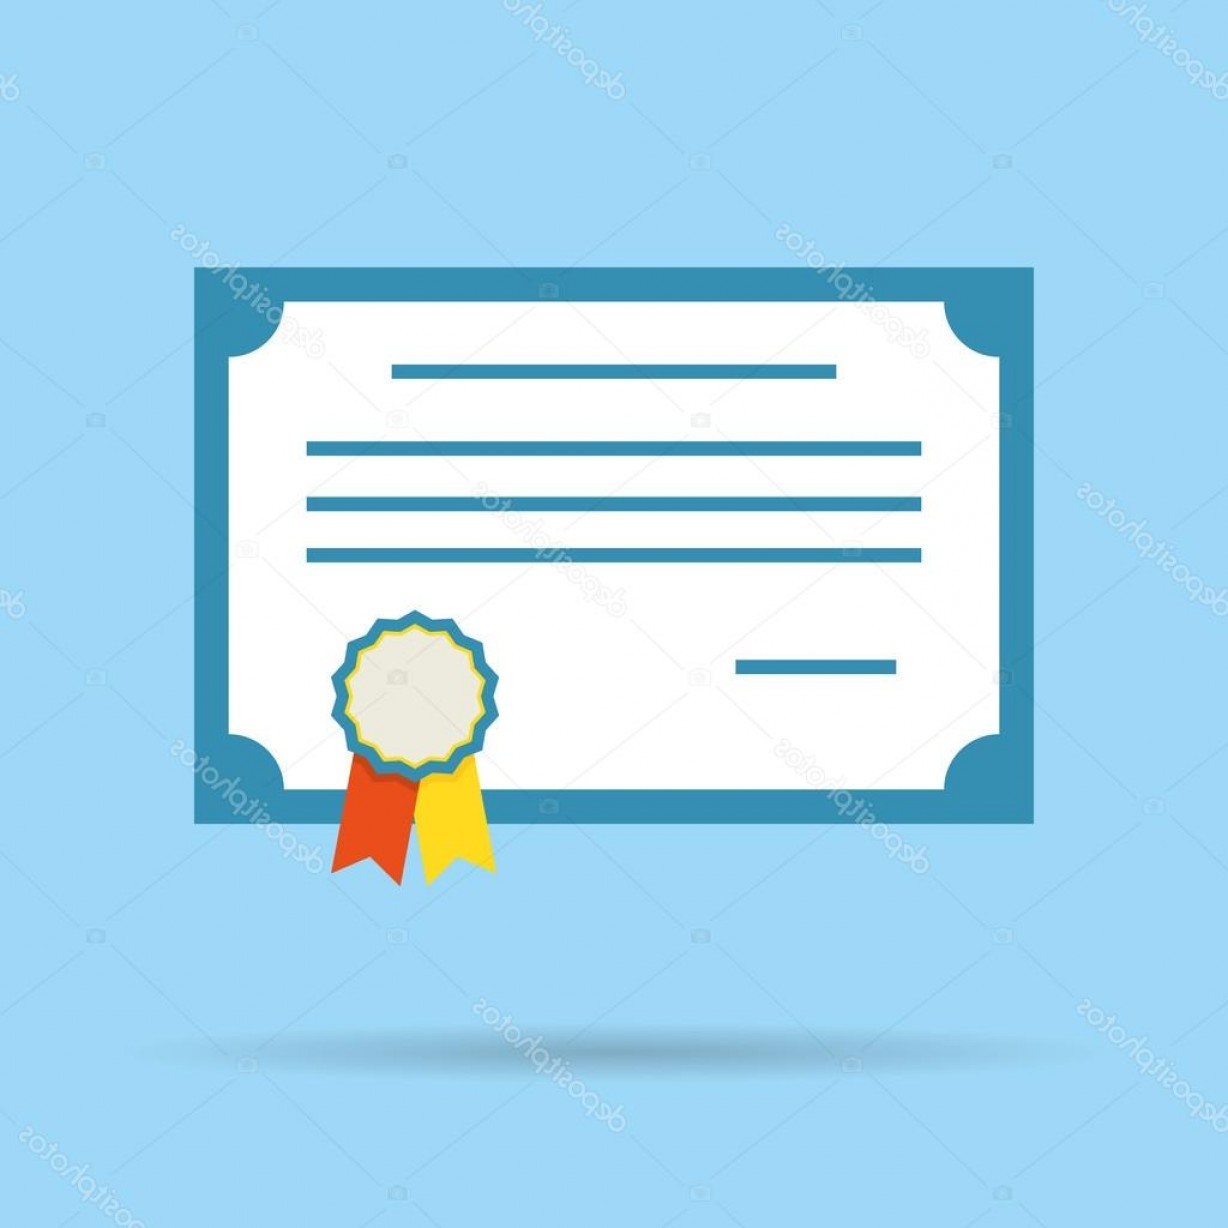 Diploma Icon Vector: Stock Illustration Certificate Vector Diploma Illustration Icon